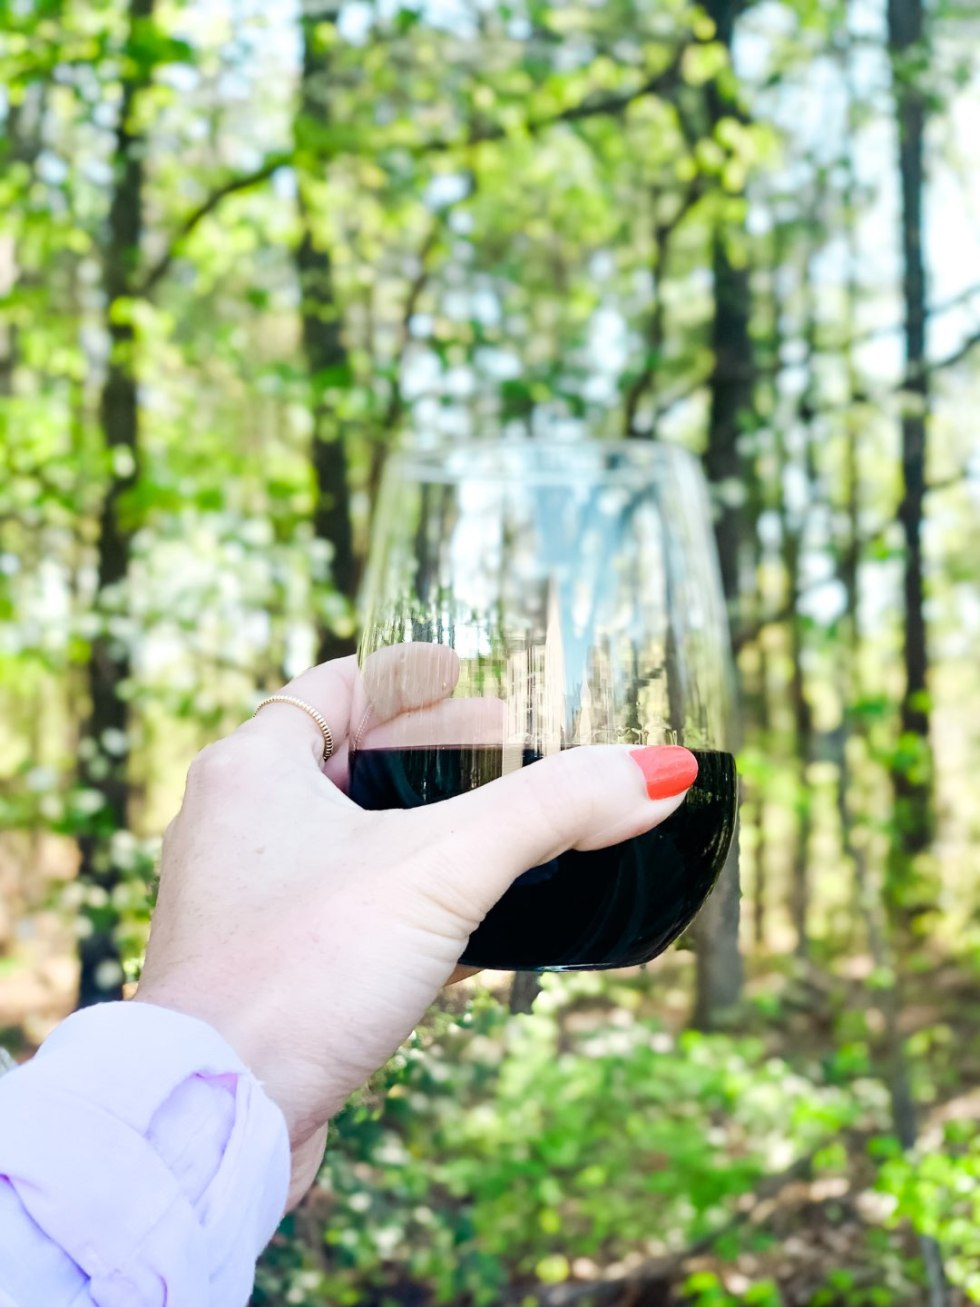 How to Master the Perfect Manicure at Home - I'm Fixin' To - @mbg0112 |  Home Manicure Essentials by popular NC beauty blog, I'm Fixin' To: image of a woman with a red polish manicure and holding a stemless wine glass.